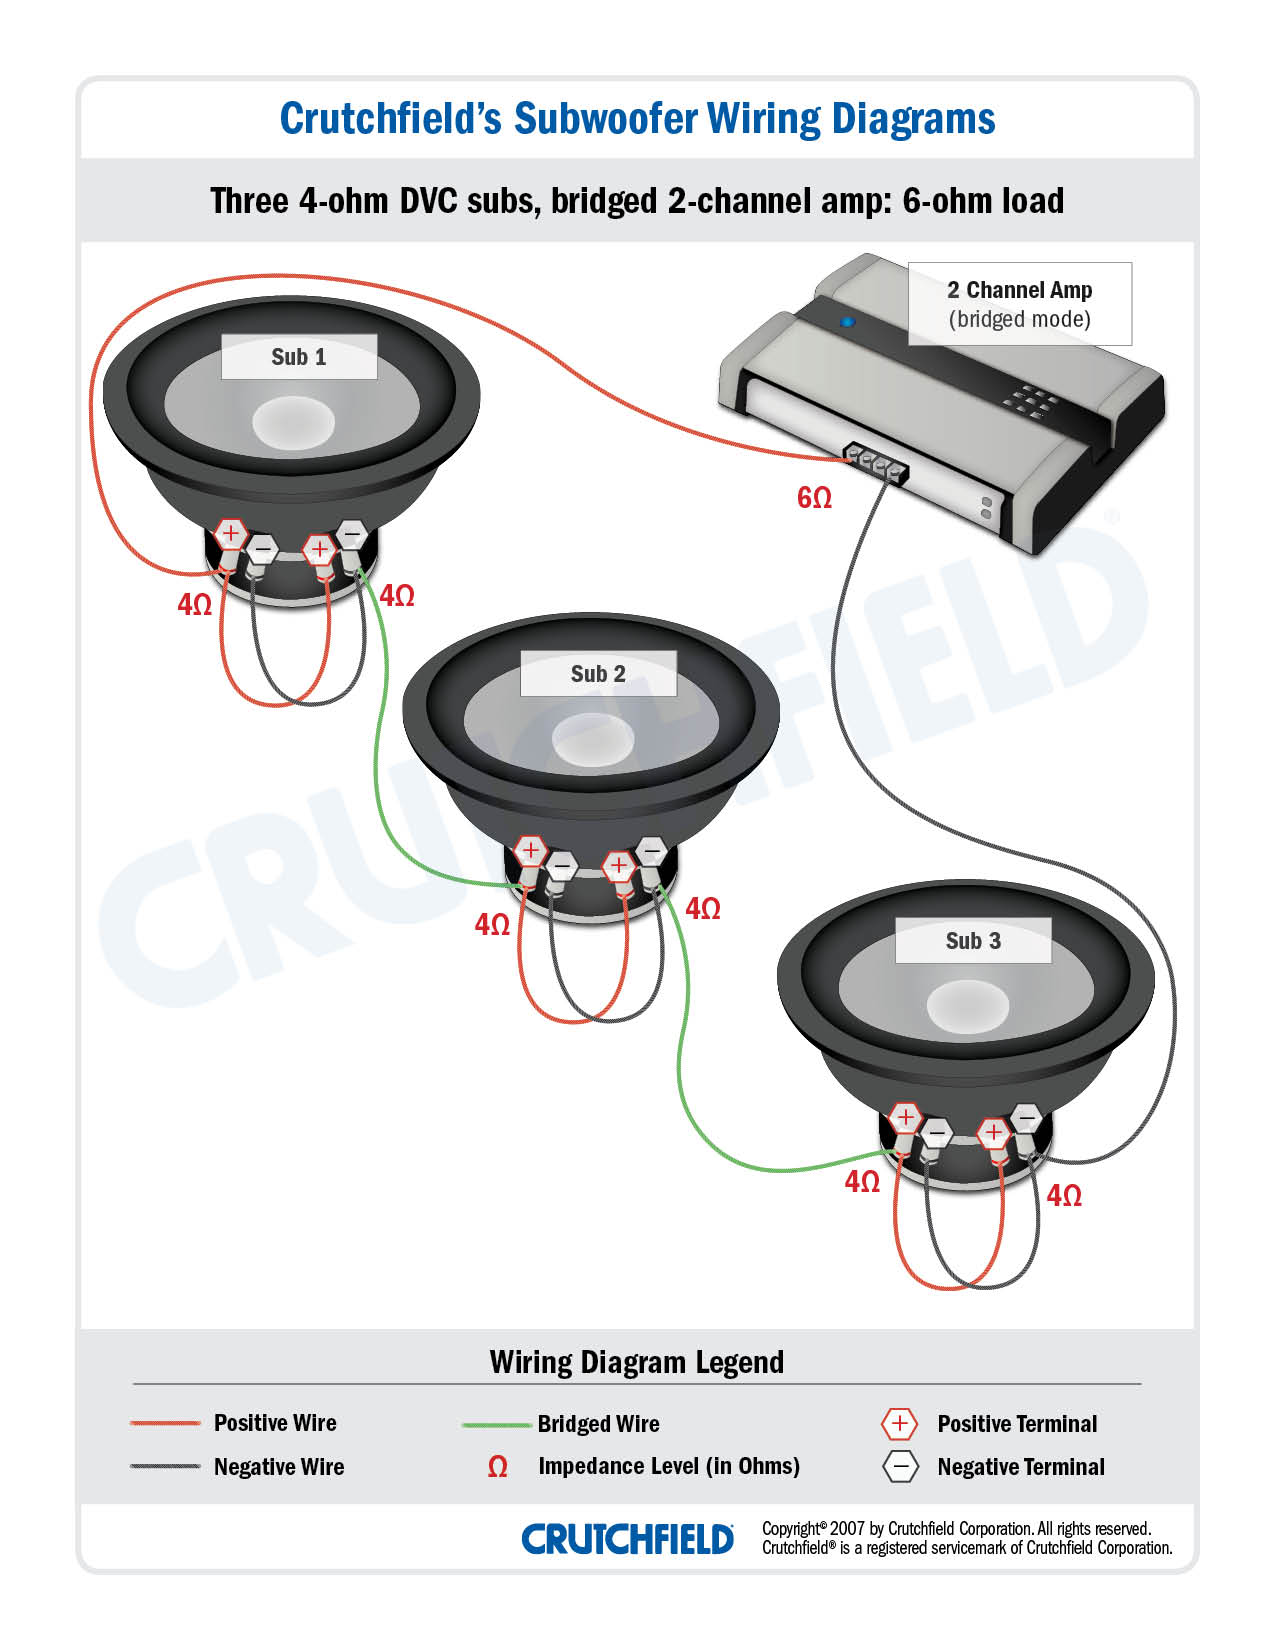 subwoofer wiring diagrams rh crutchfield com Altec Lansing Speaker Wiring Diagram Rockford Fosgate Speaker Wiring Diagram